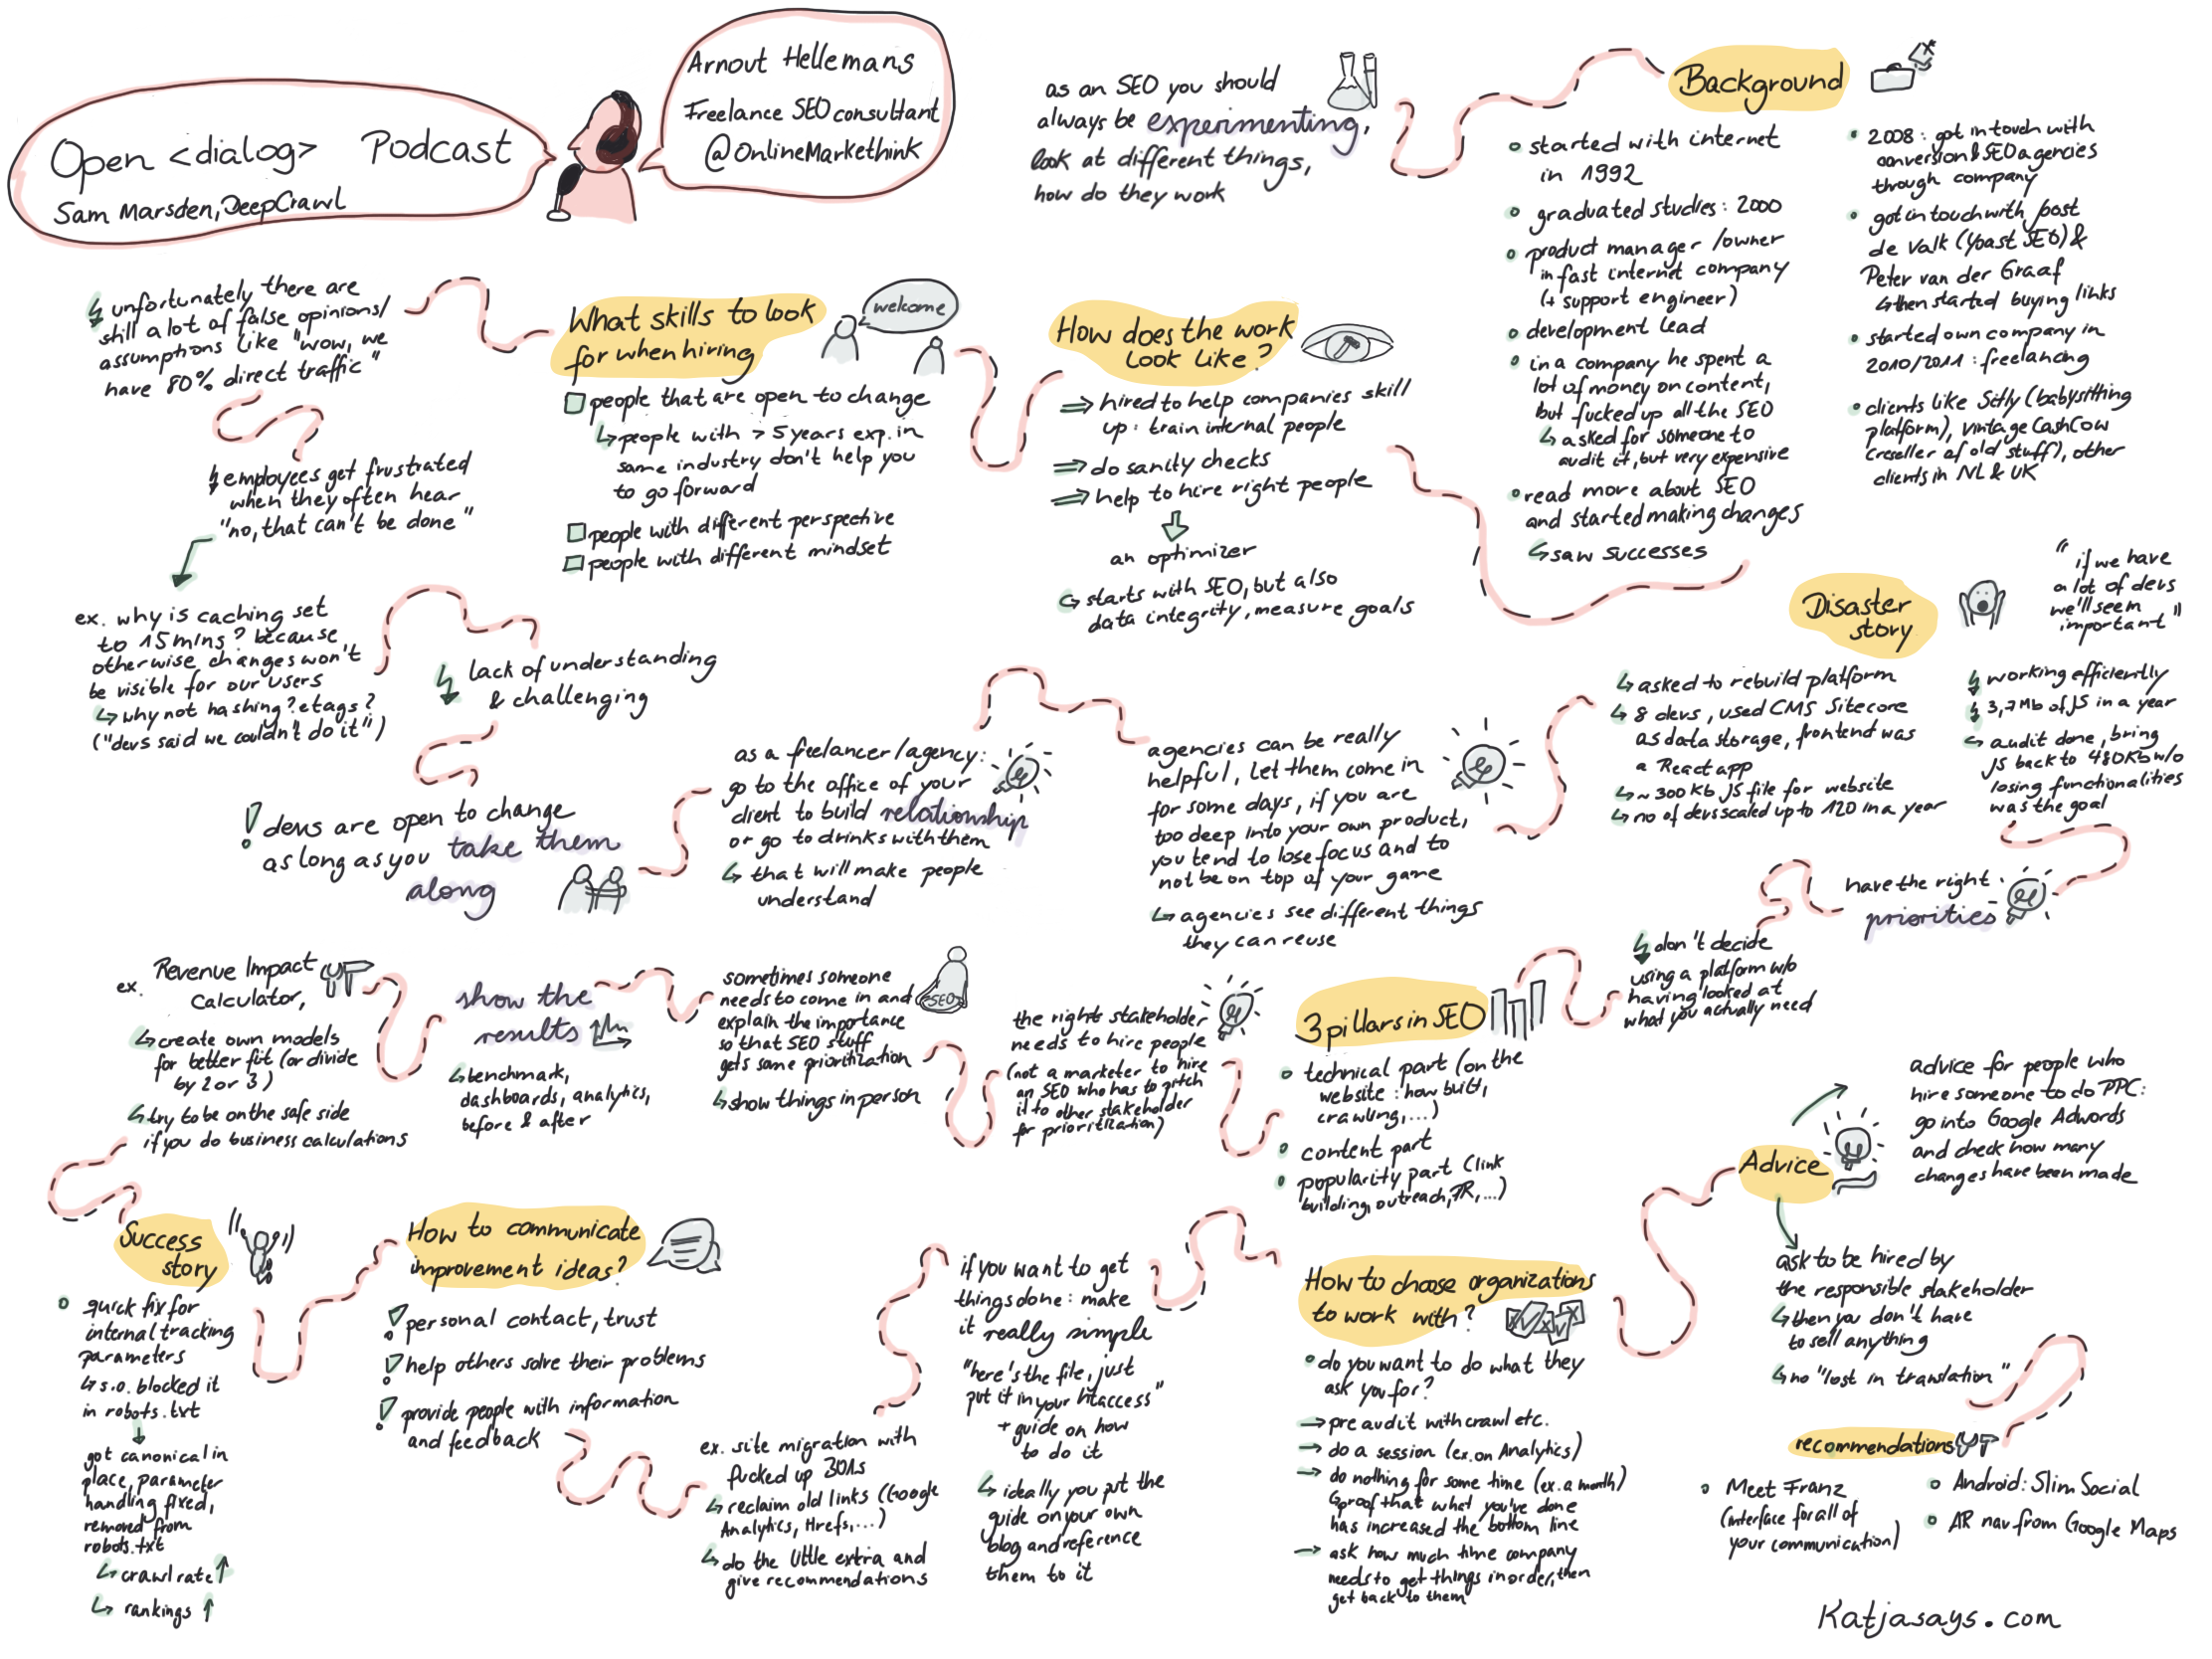 Arnout Helleman Sketch Notes open dialog podcast